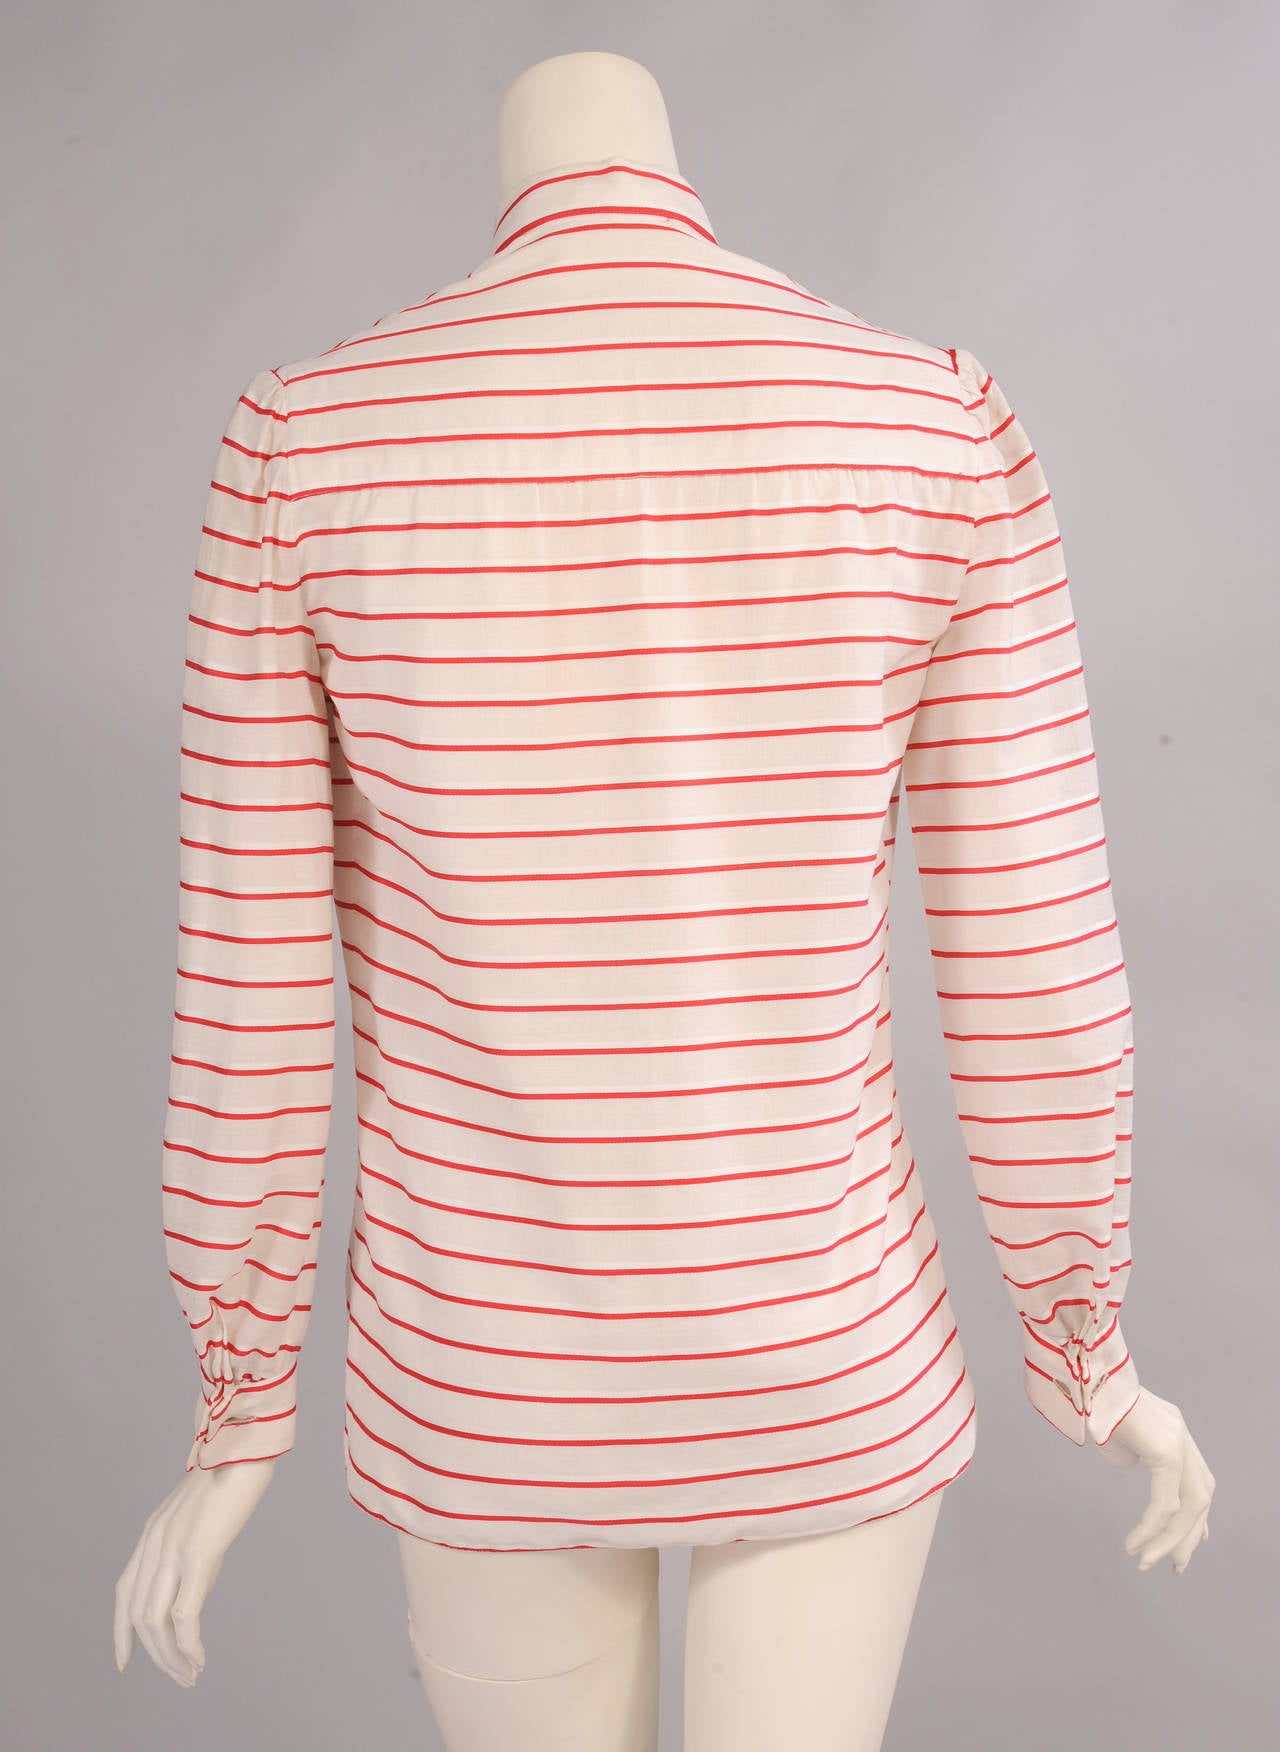 Chanel Red & White Striped Numbered Haute Couture Blouse 3